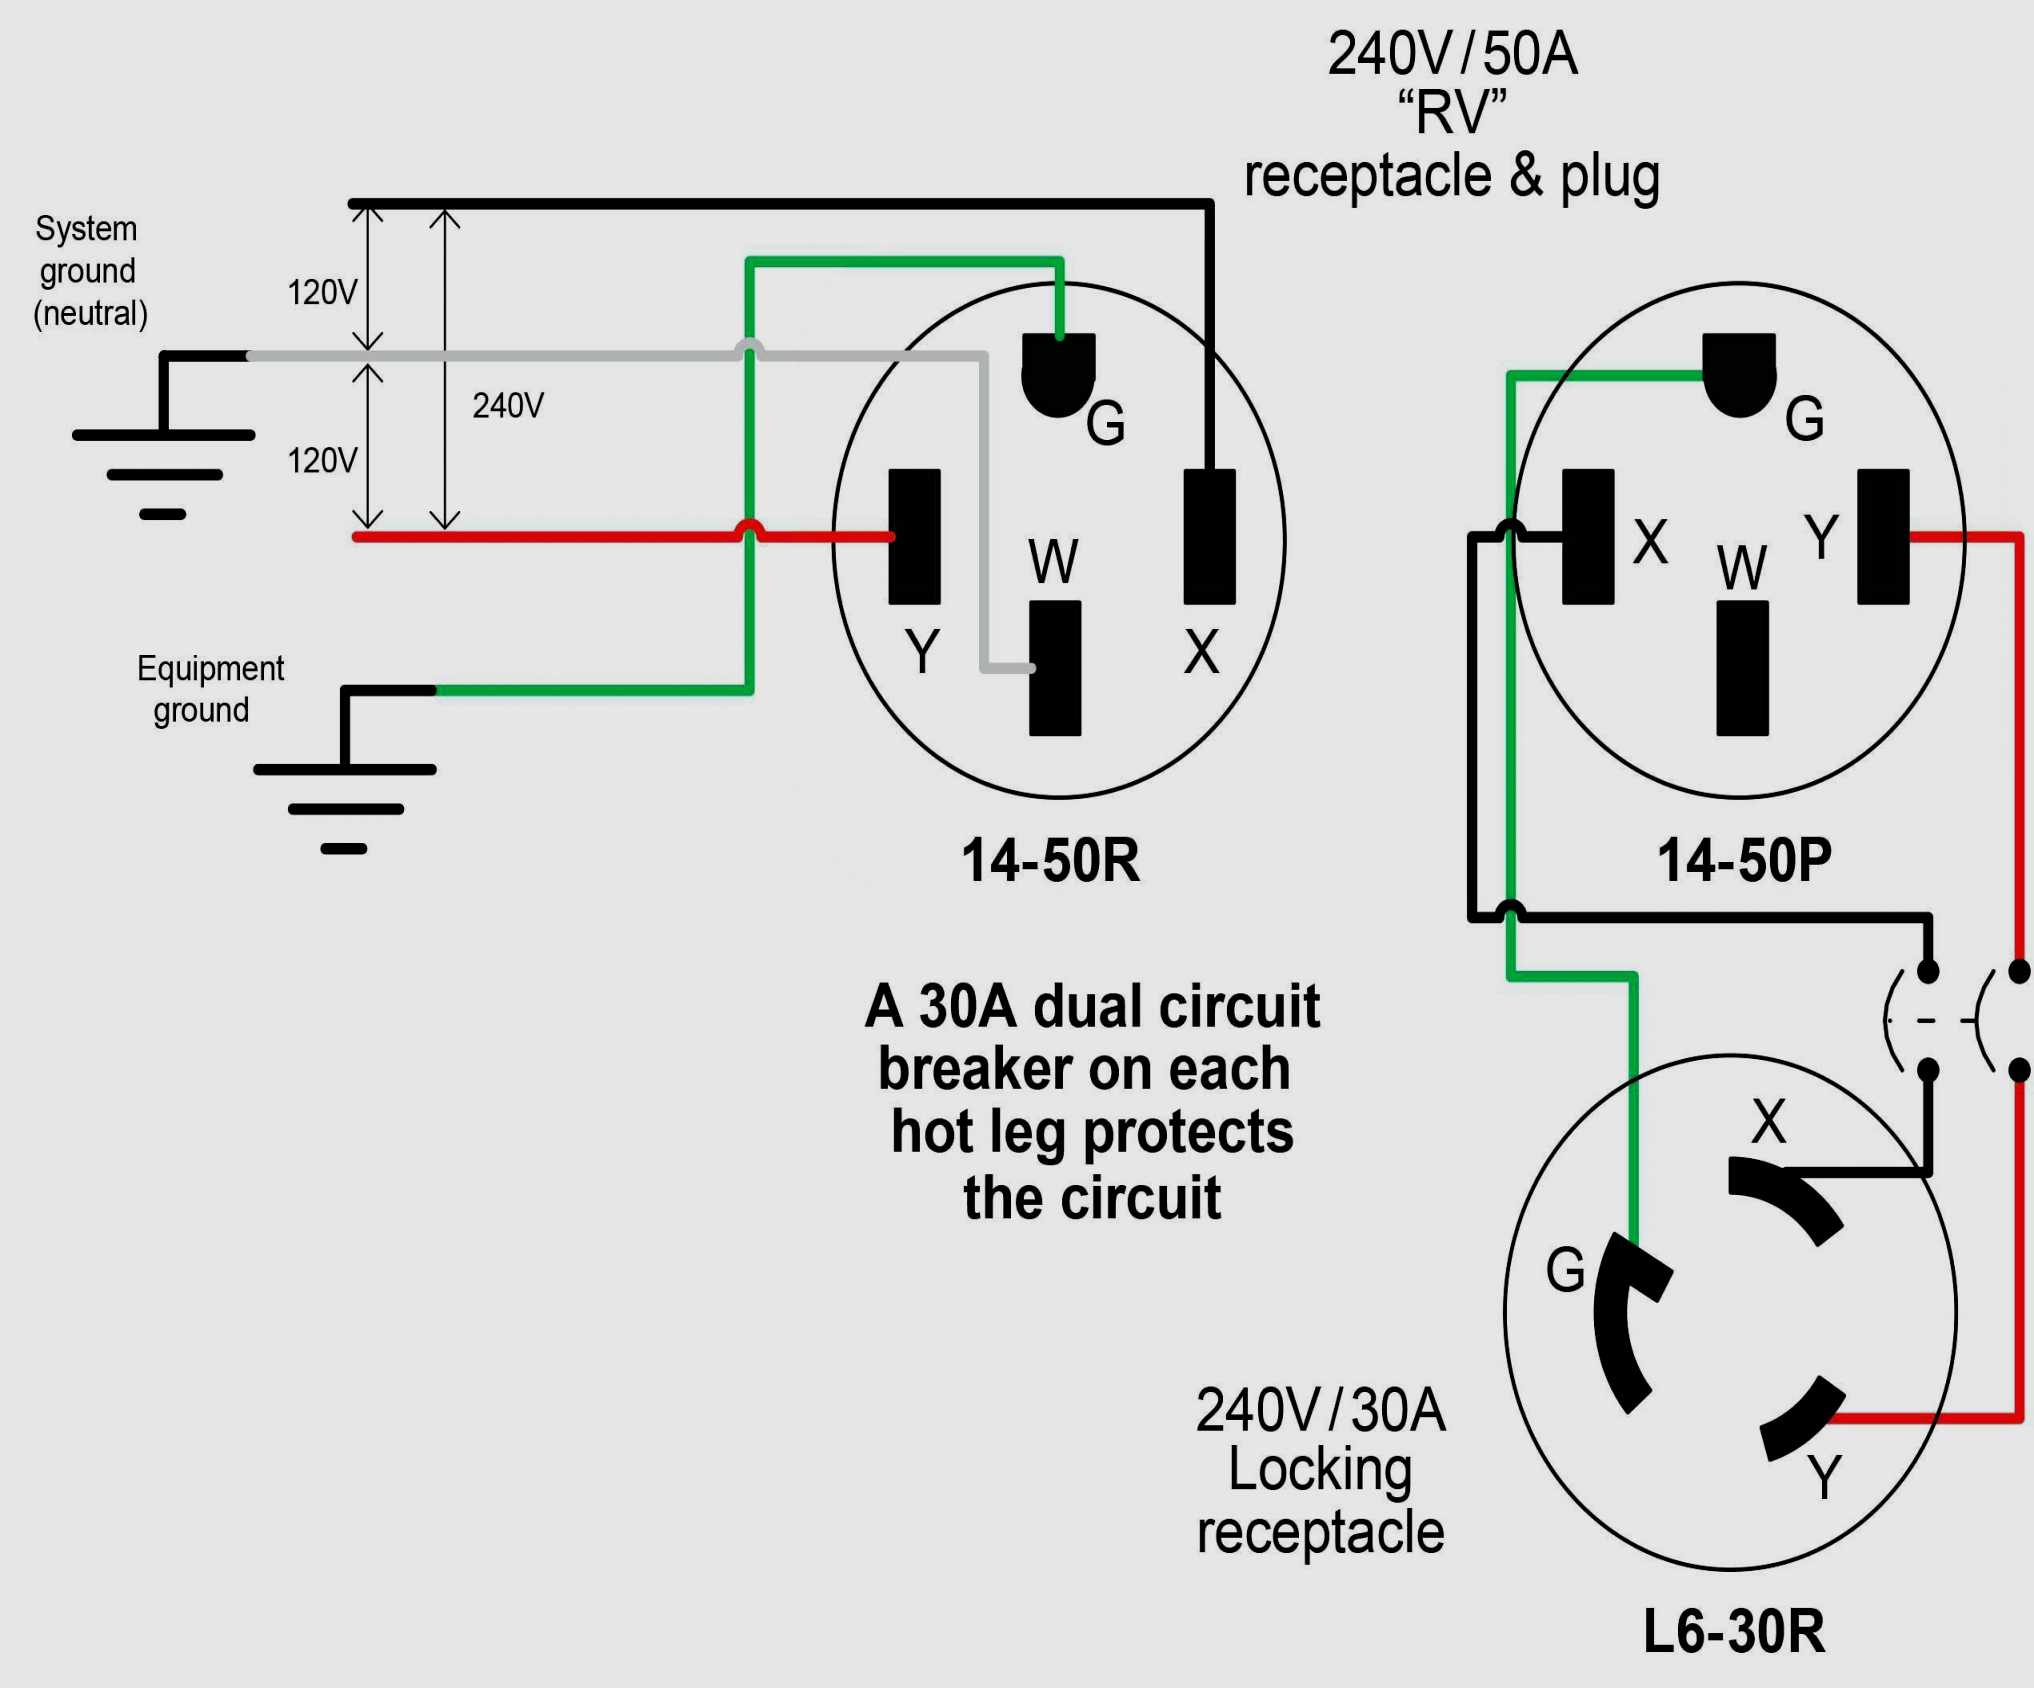 480V To 240V Single Phase Transformer Wiring Diagram | Wiring Diagram - 480V To 240V Transformer Wiring Diagram